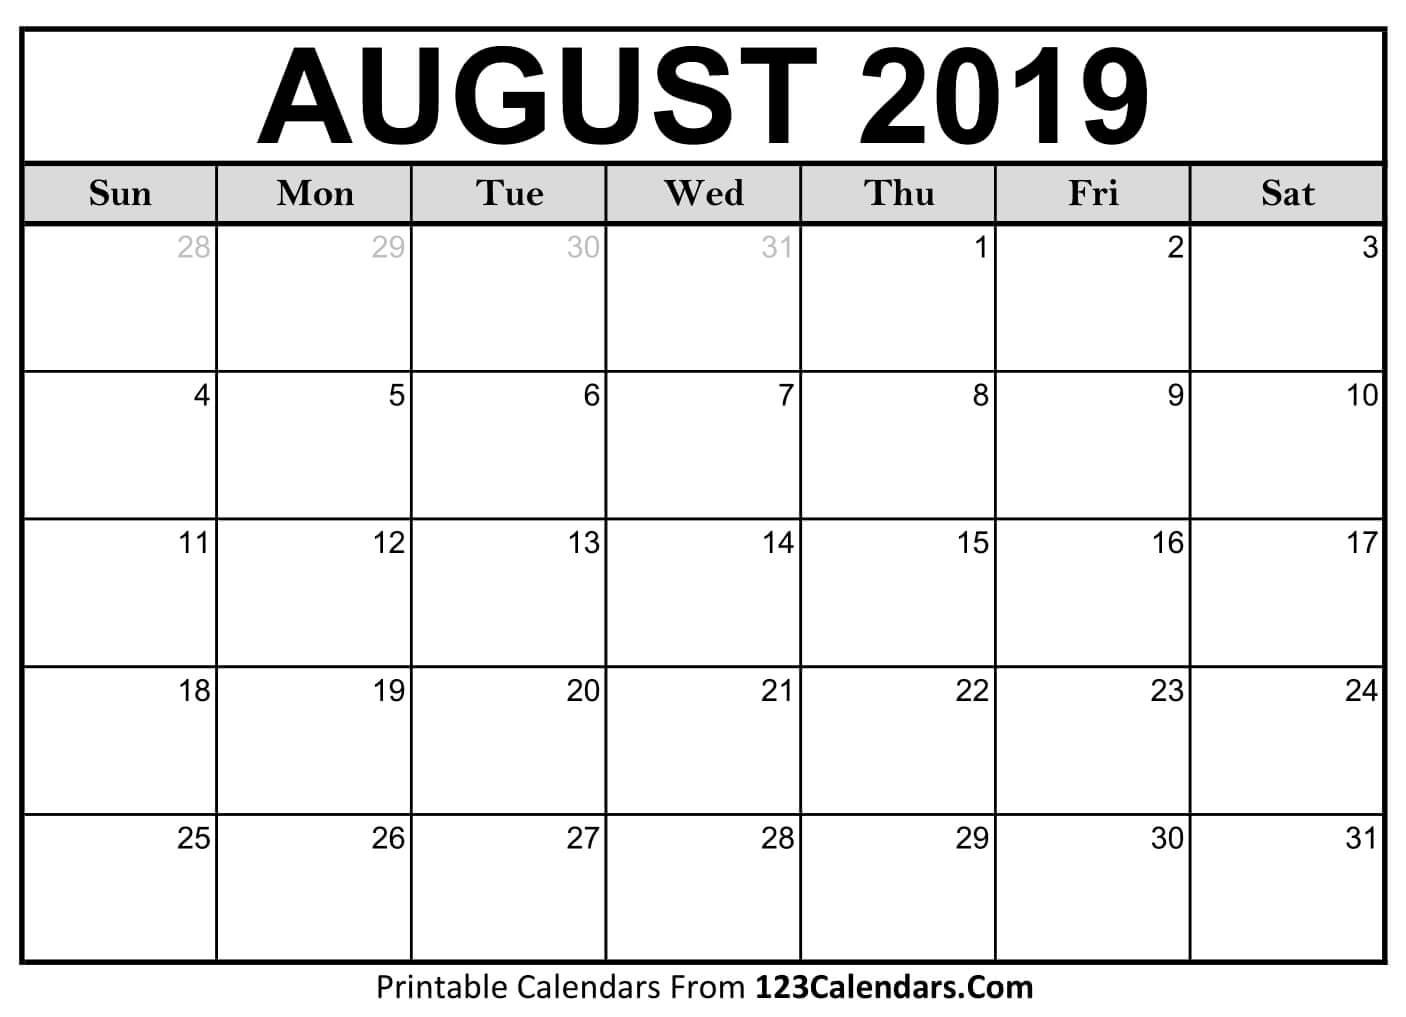 Printable August 2019 Calendar Templates - 123Calendars Calendar Of 2019 August